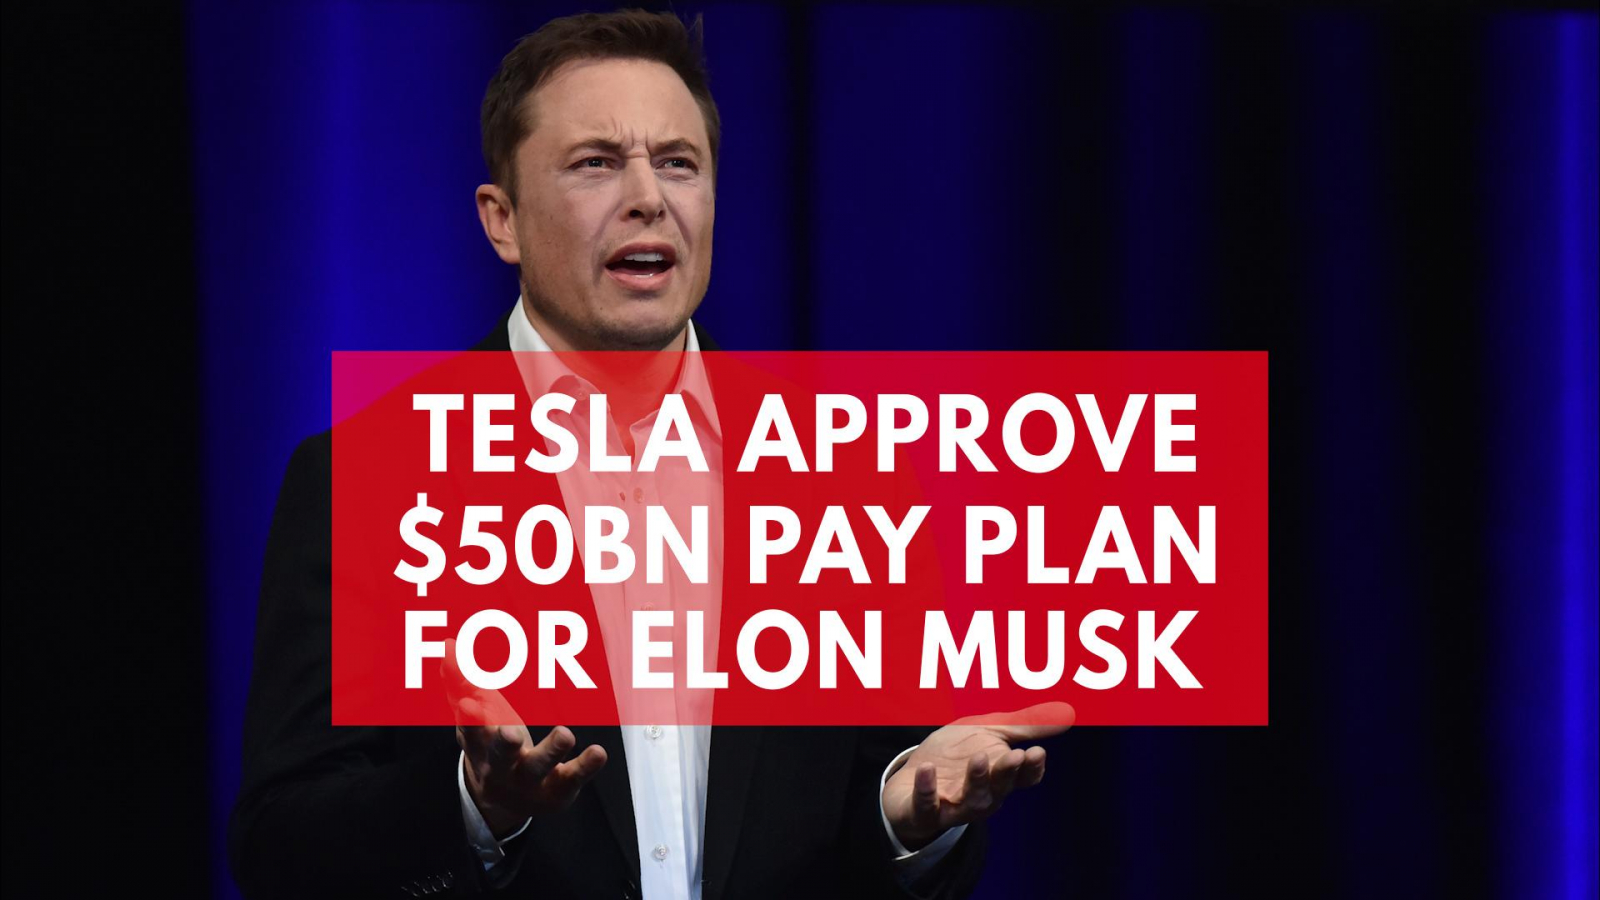 elon-musk-could-earn-more-than-50-billion-from-tesla-pay-package